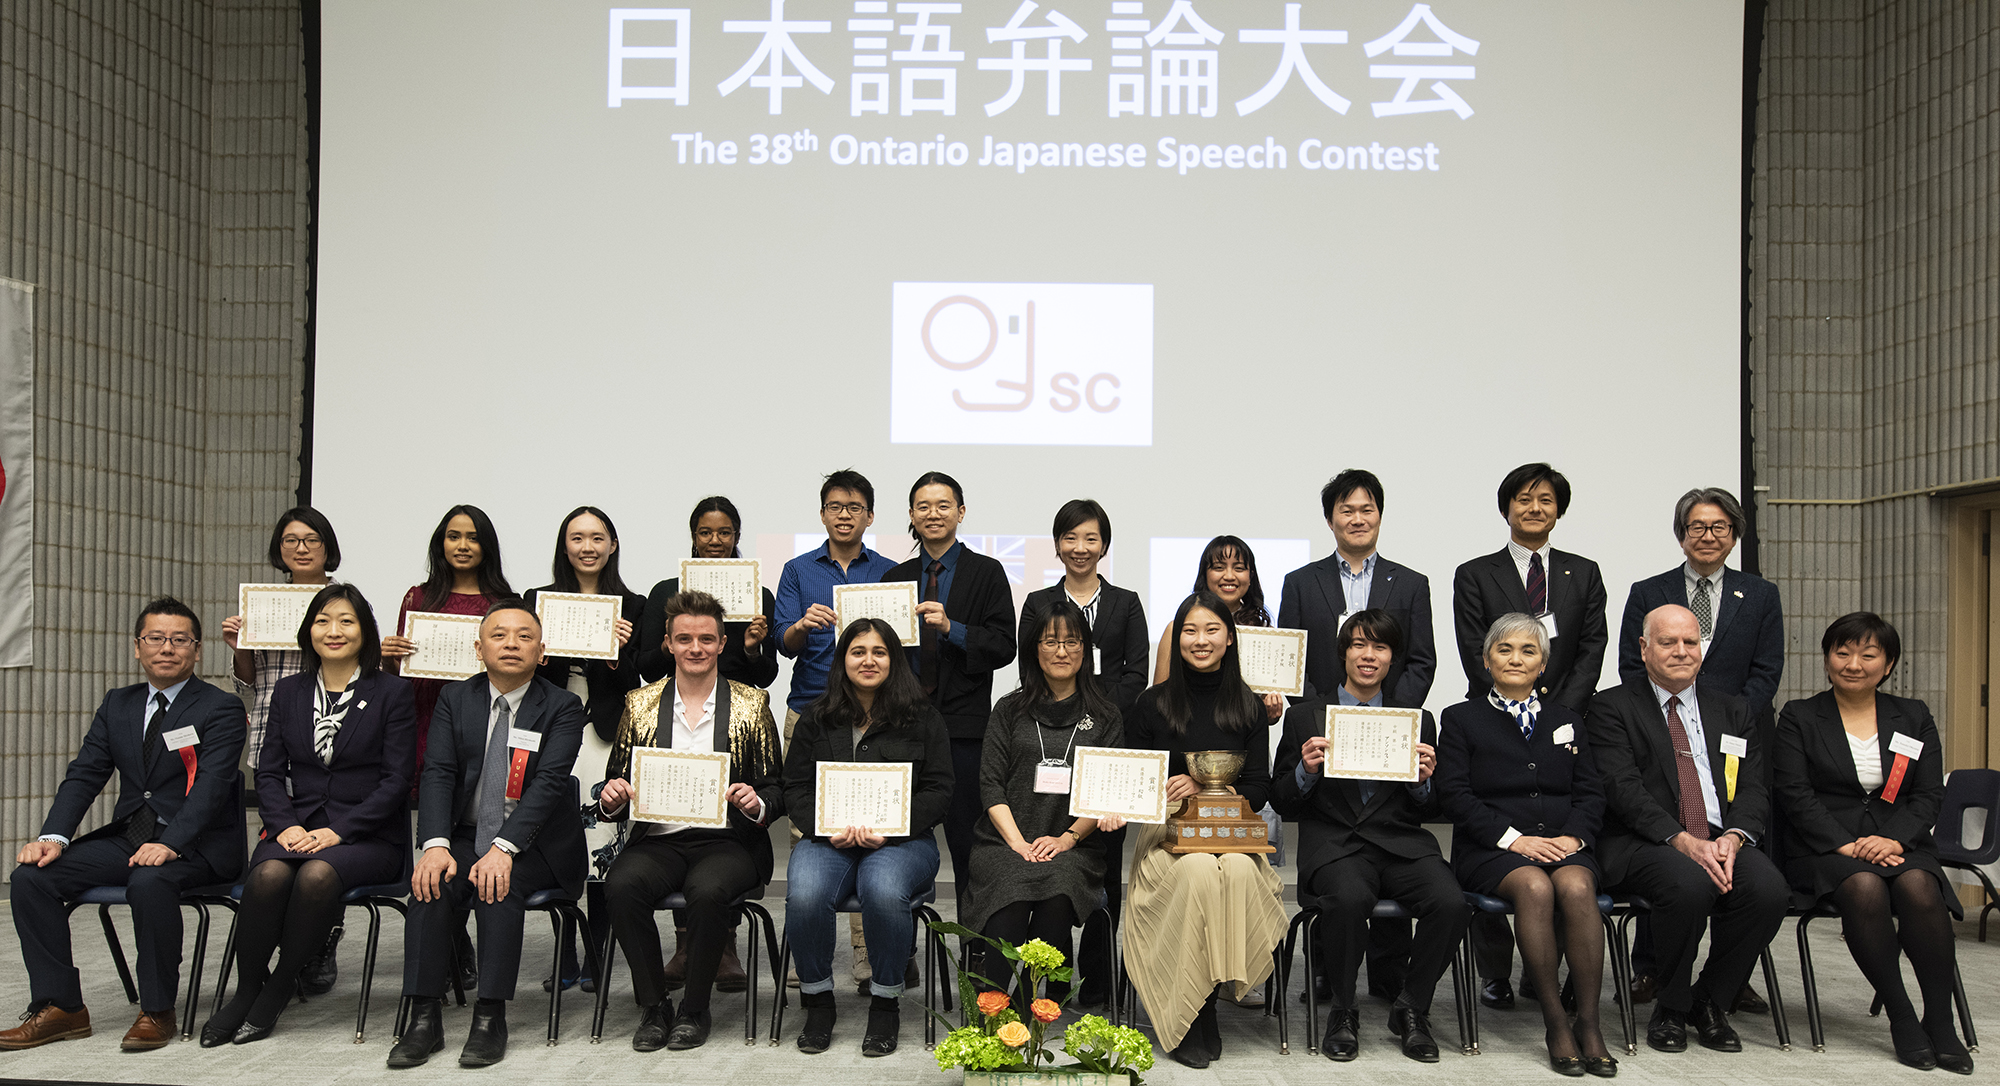 Group photo of winners at the Japanese Speech Contest